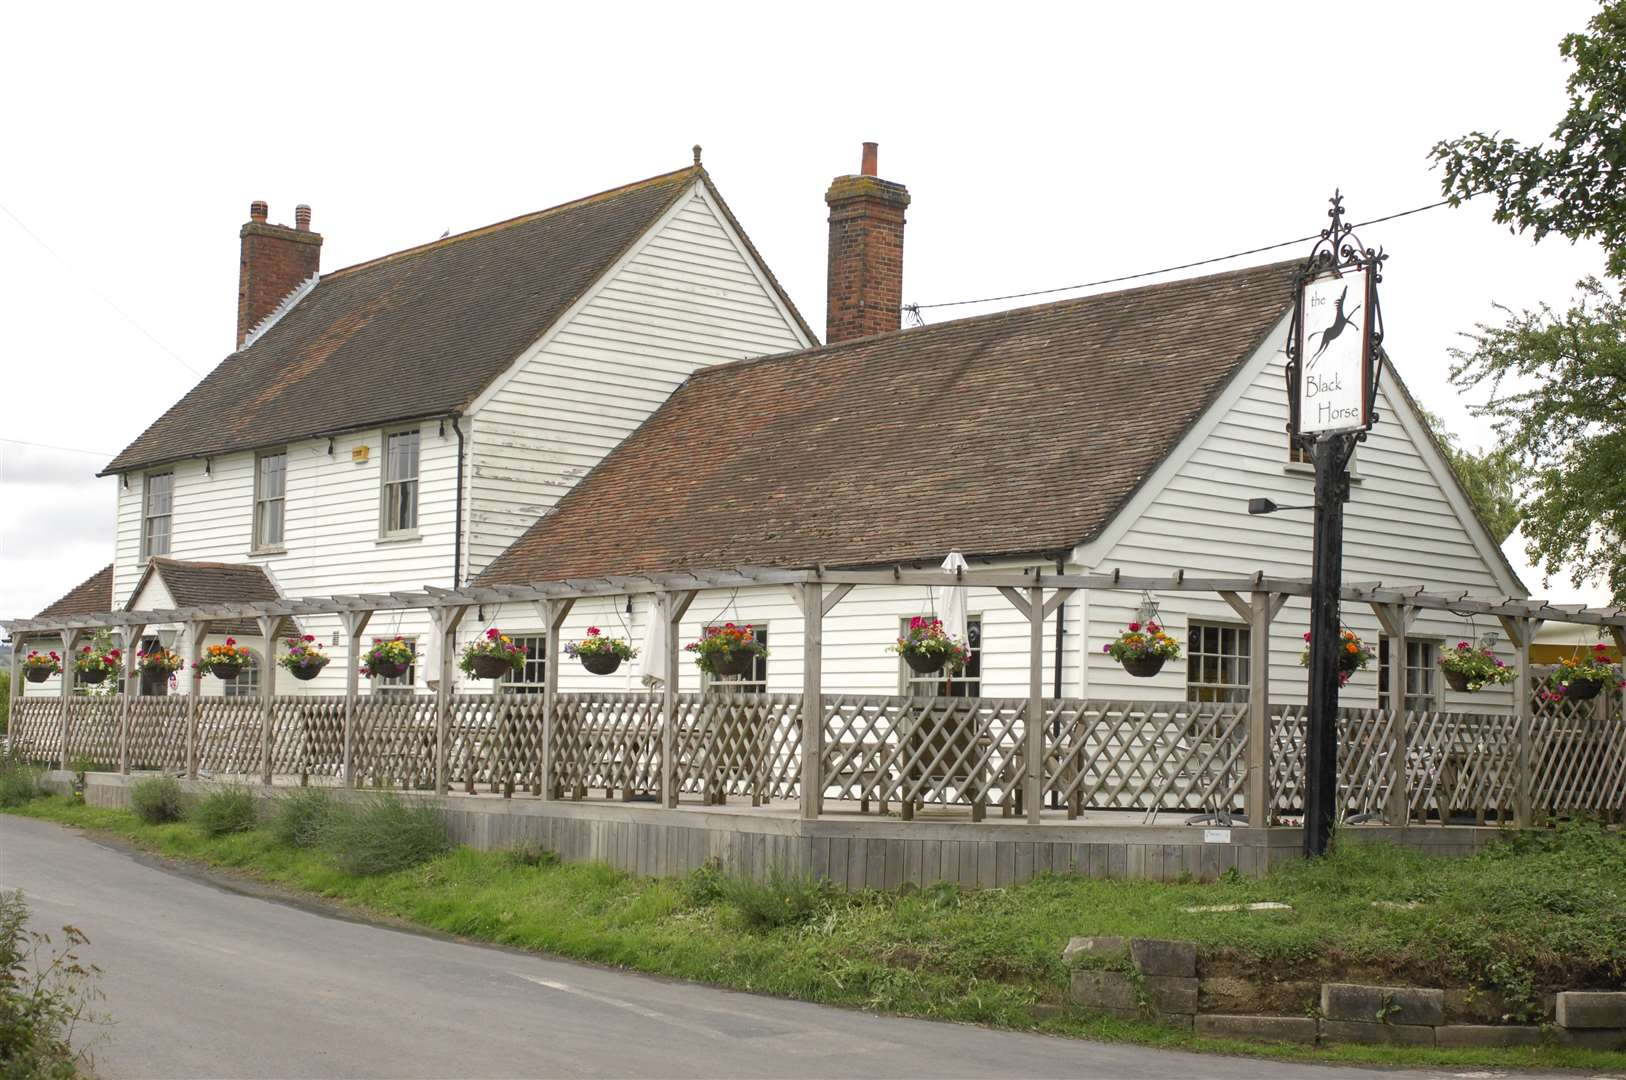 The Black Horse pub, Monks Horton